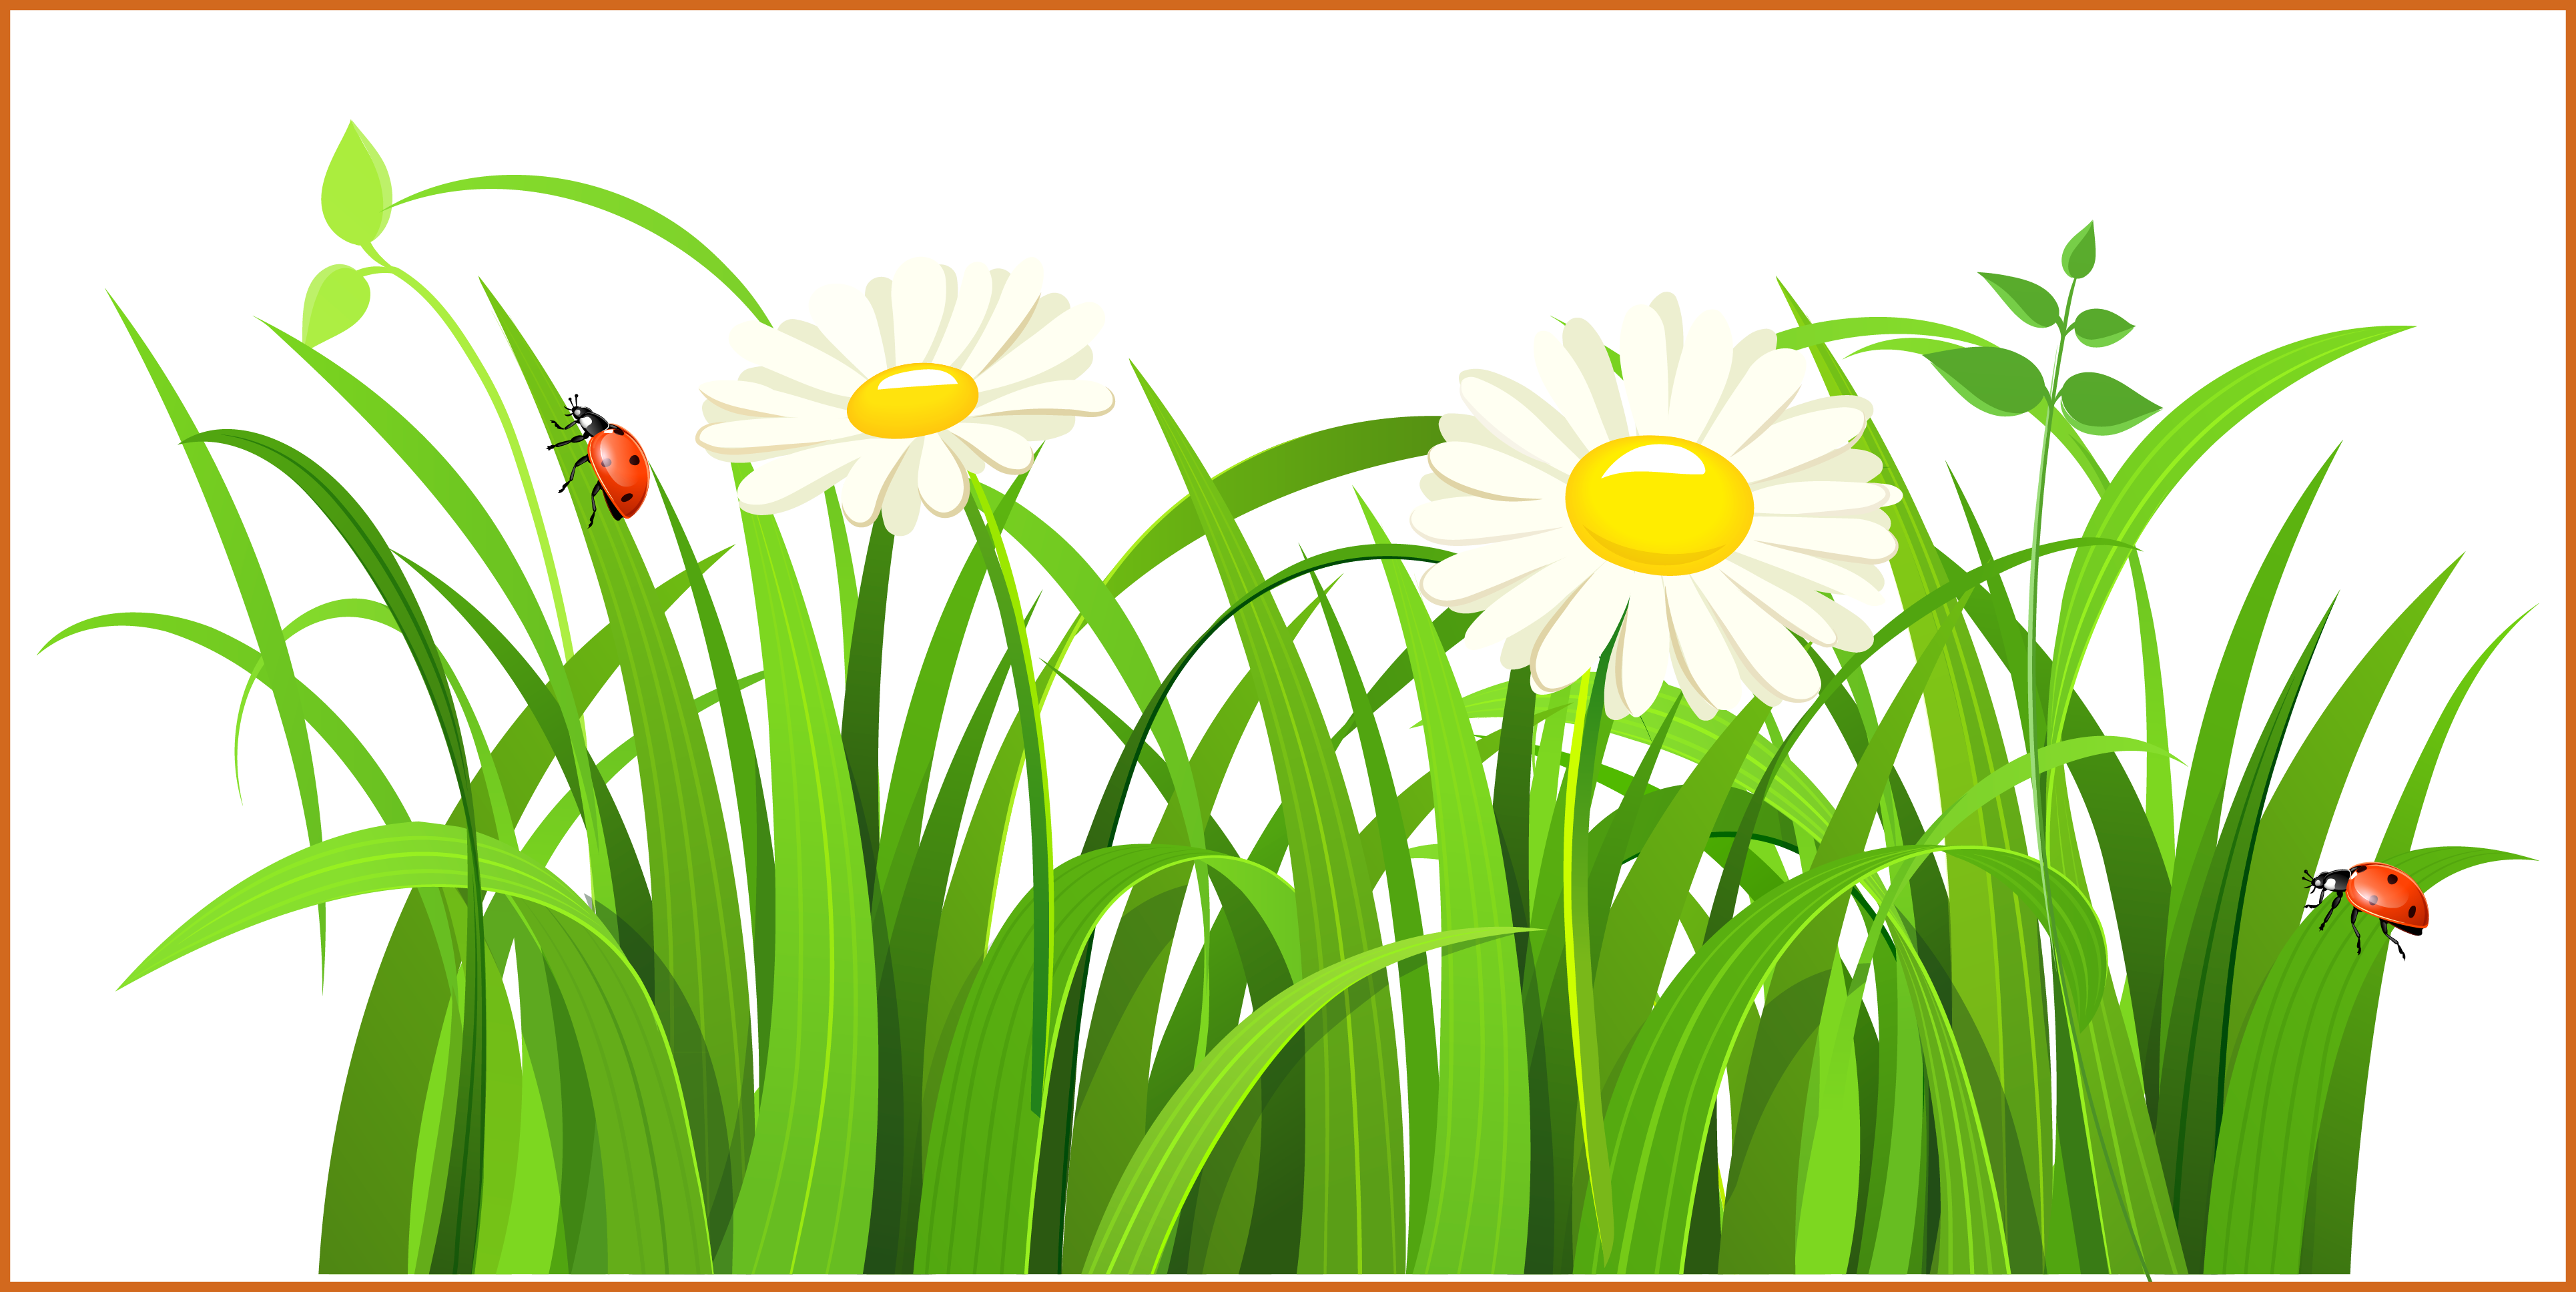 Daisy clipart patch grass. Appealing png button and